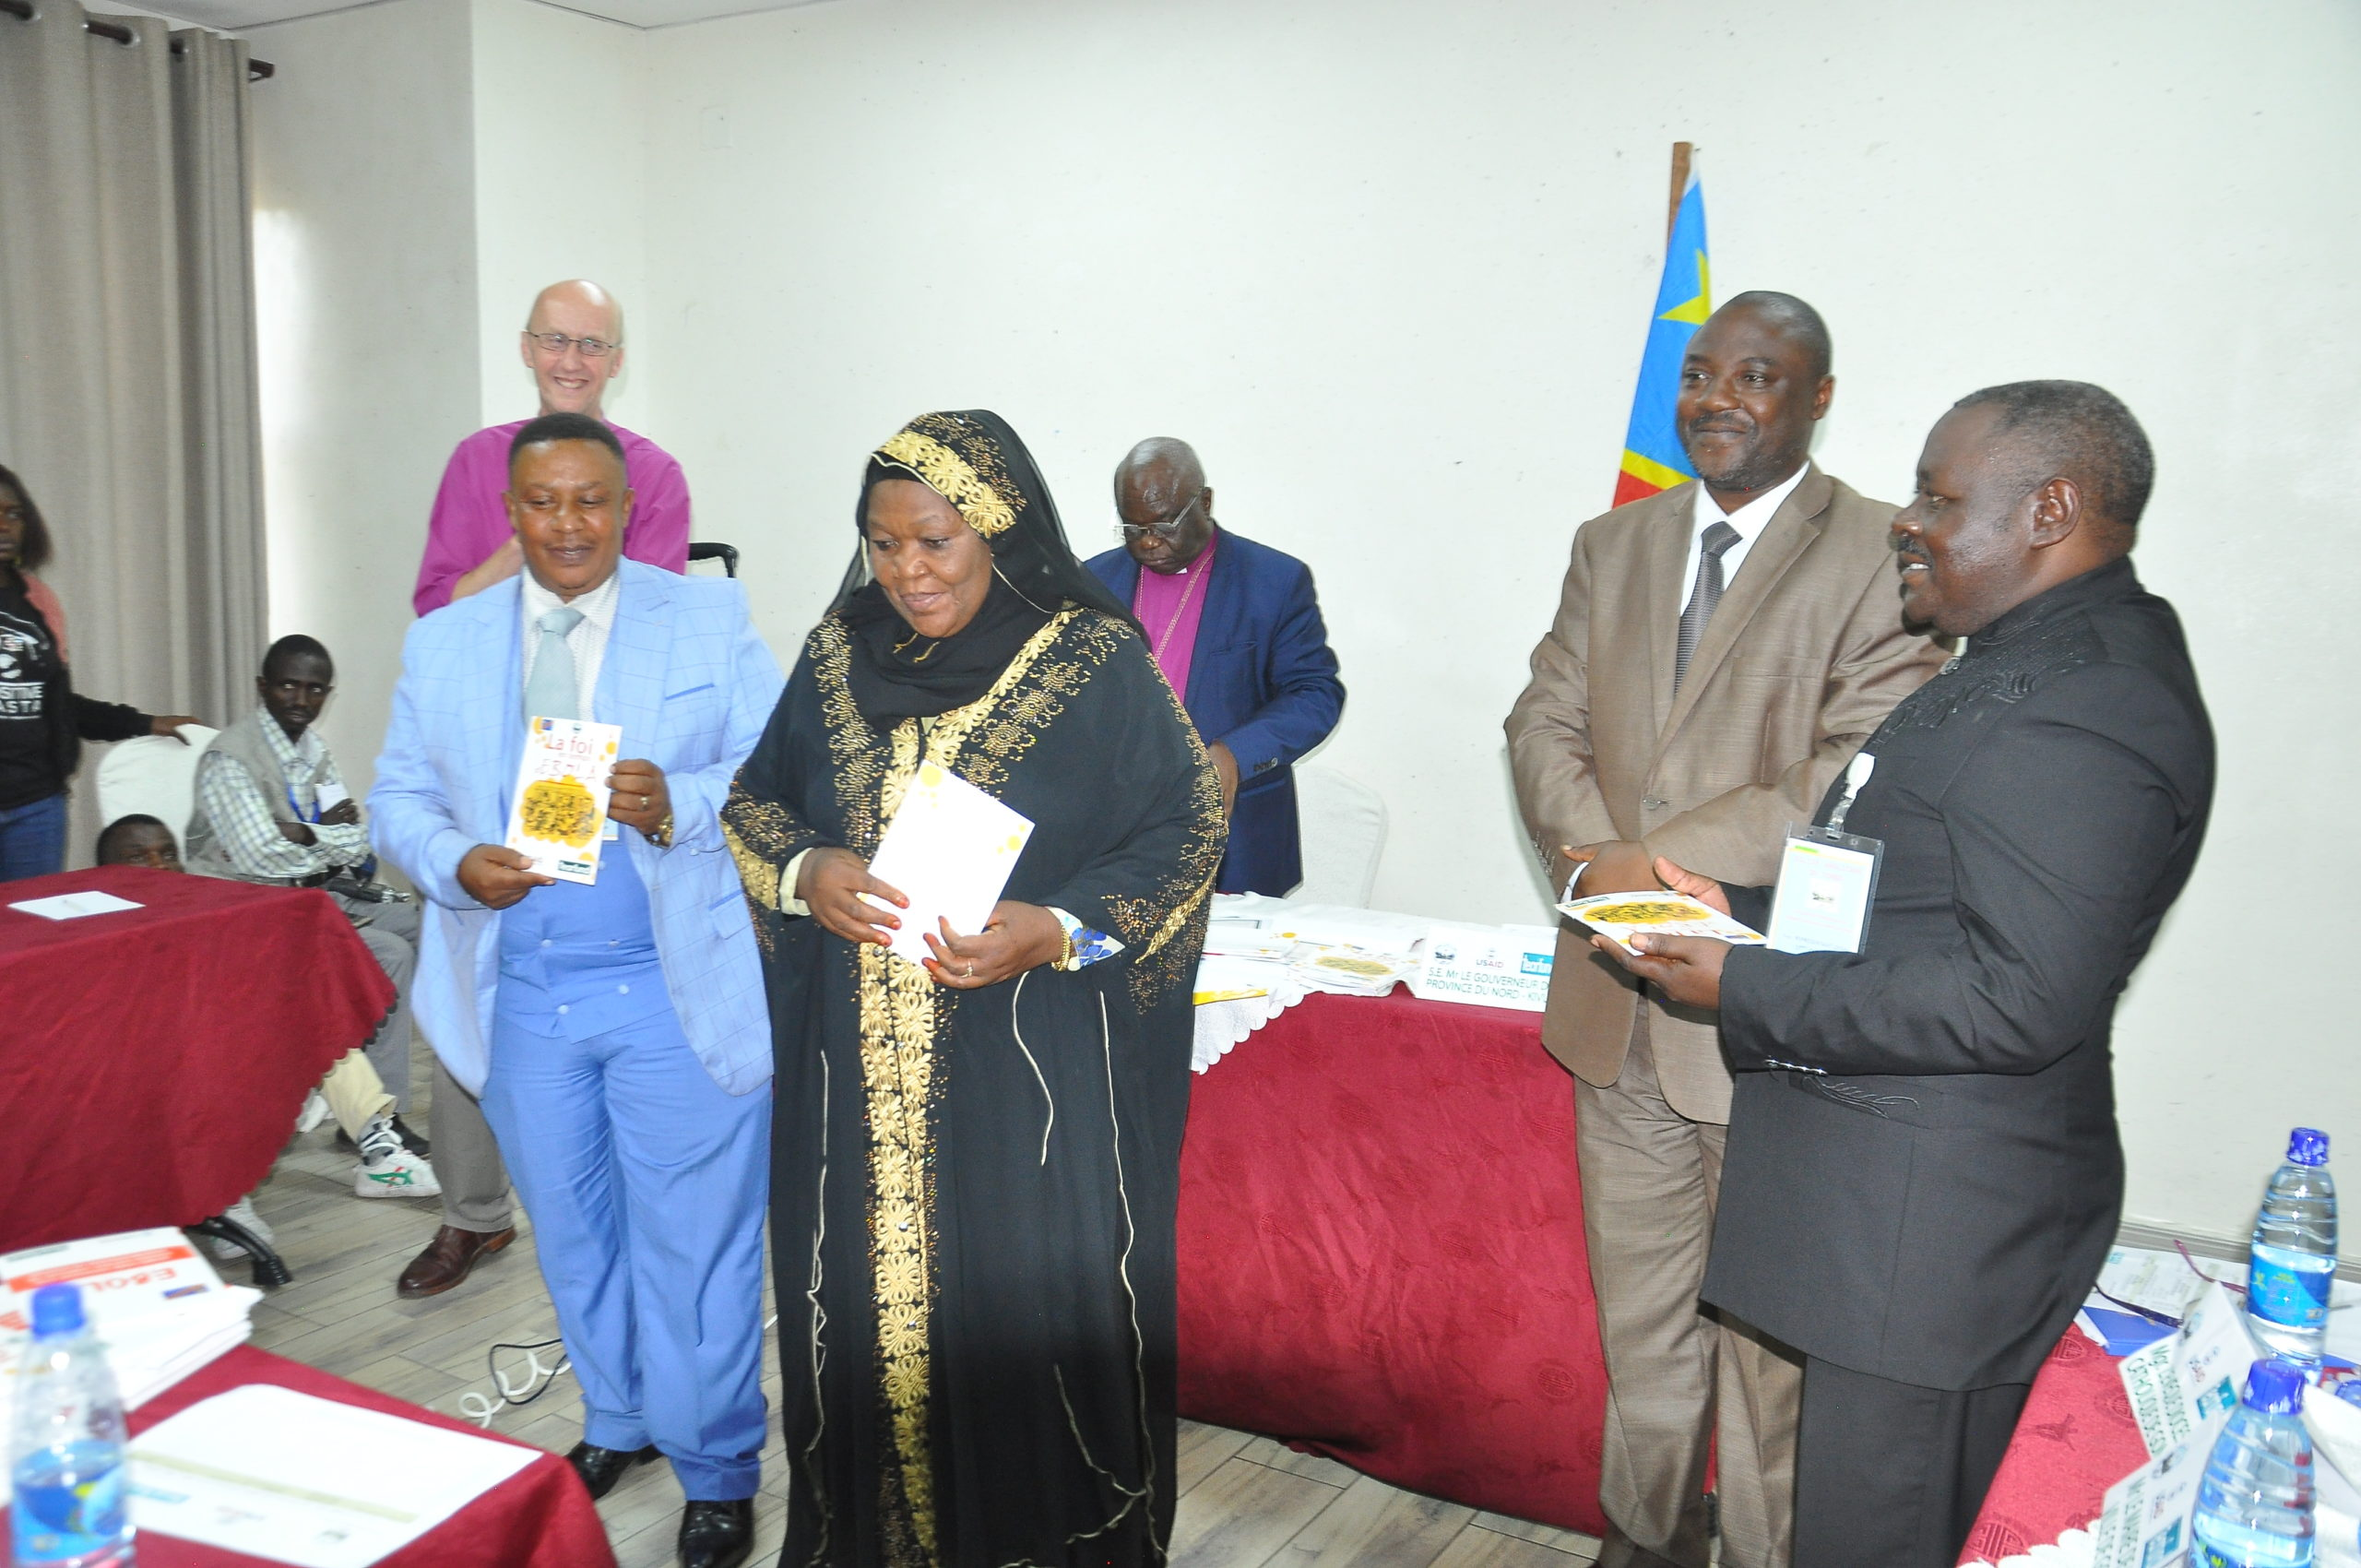 Religious leaders receive information to help correct Ebola myths and misinformation.